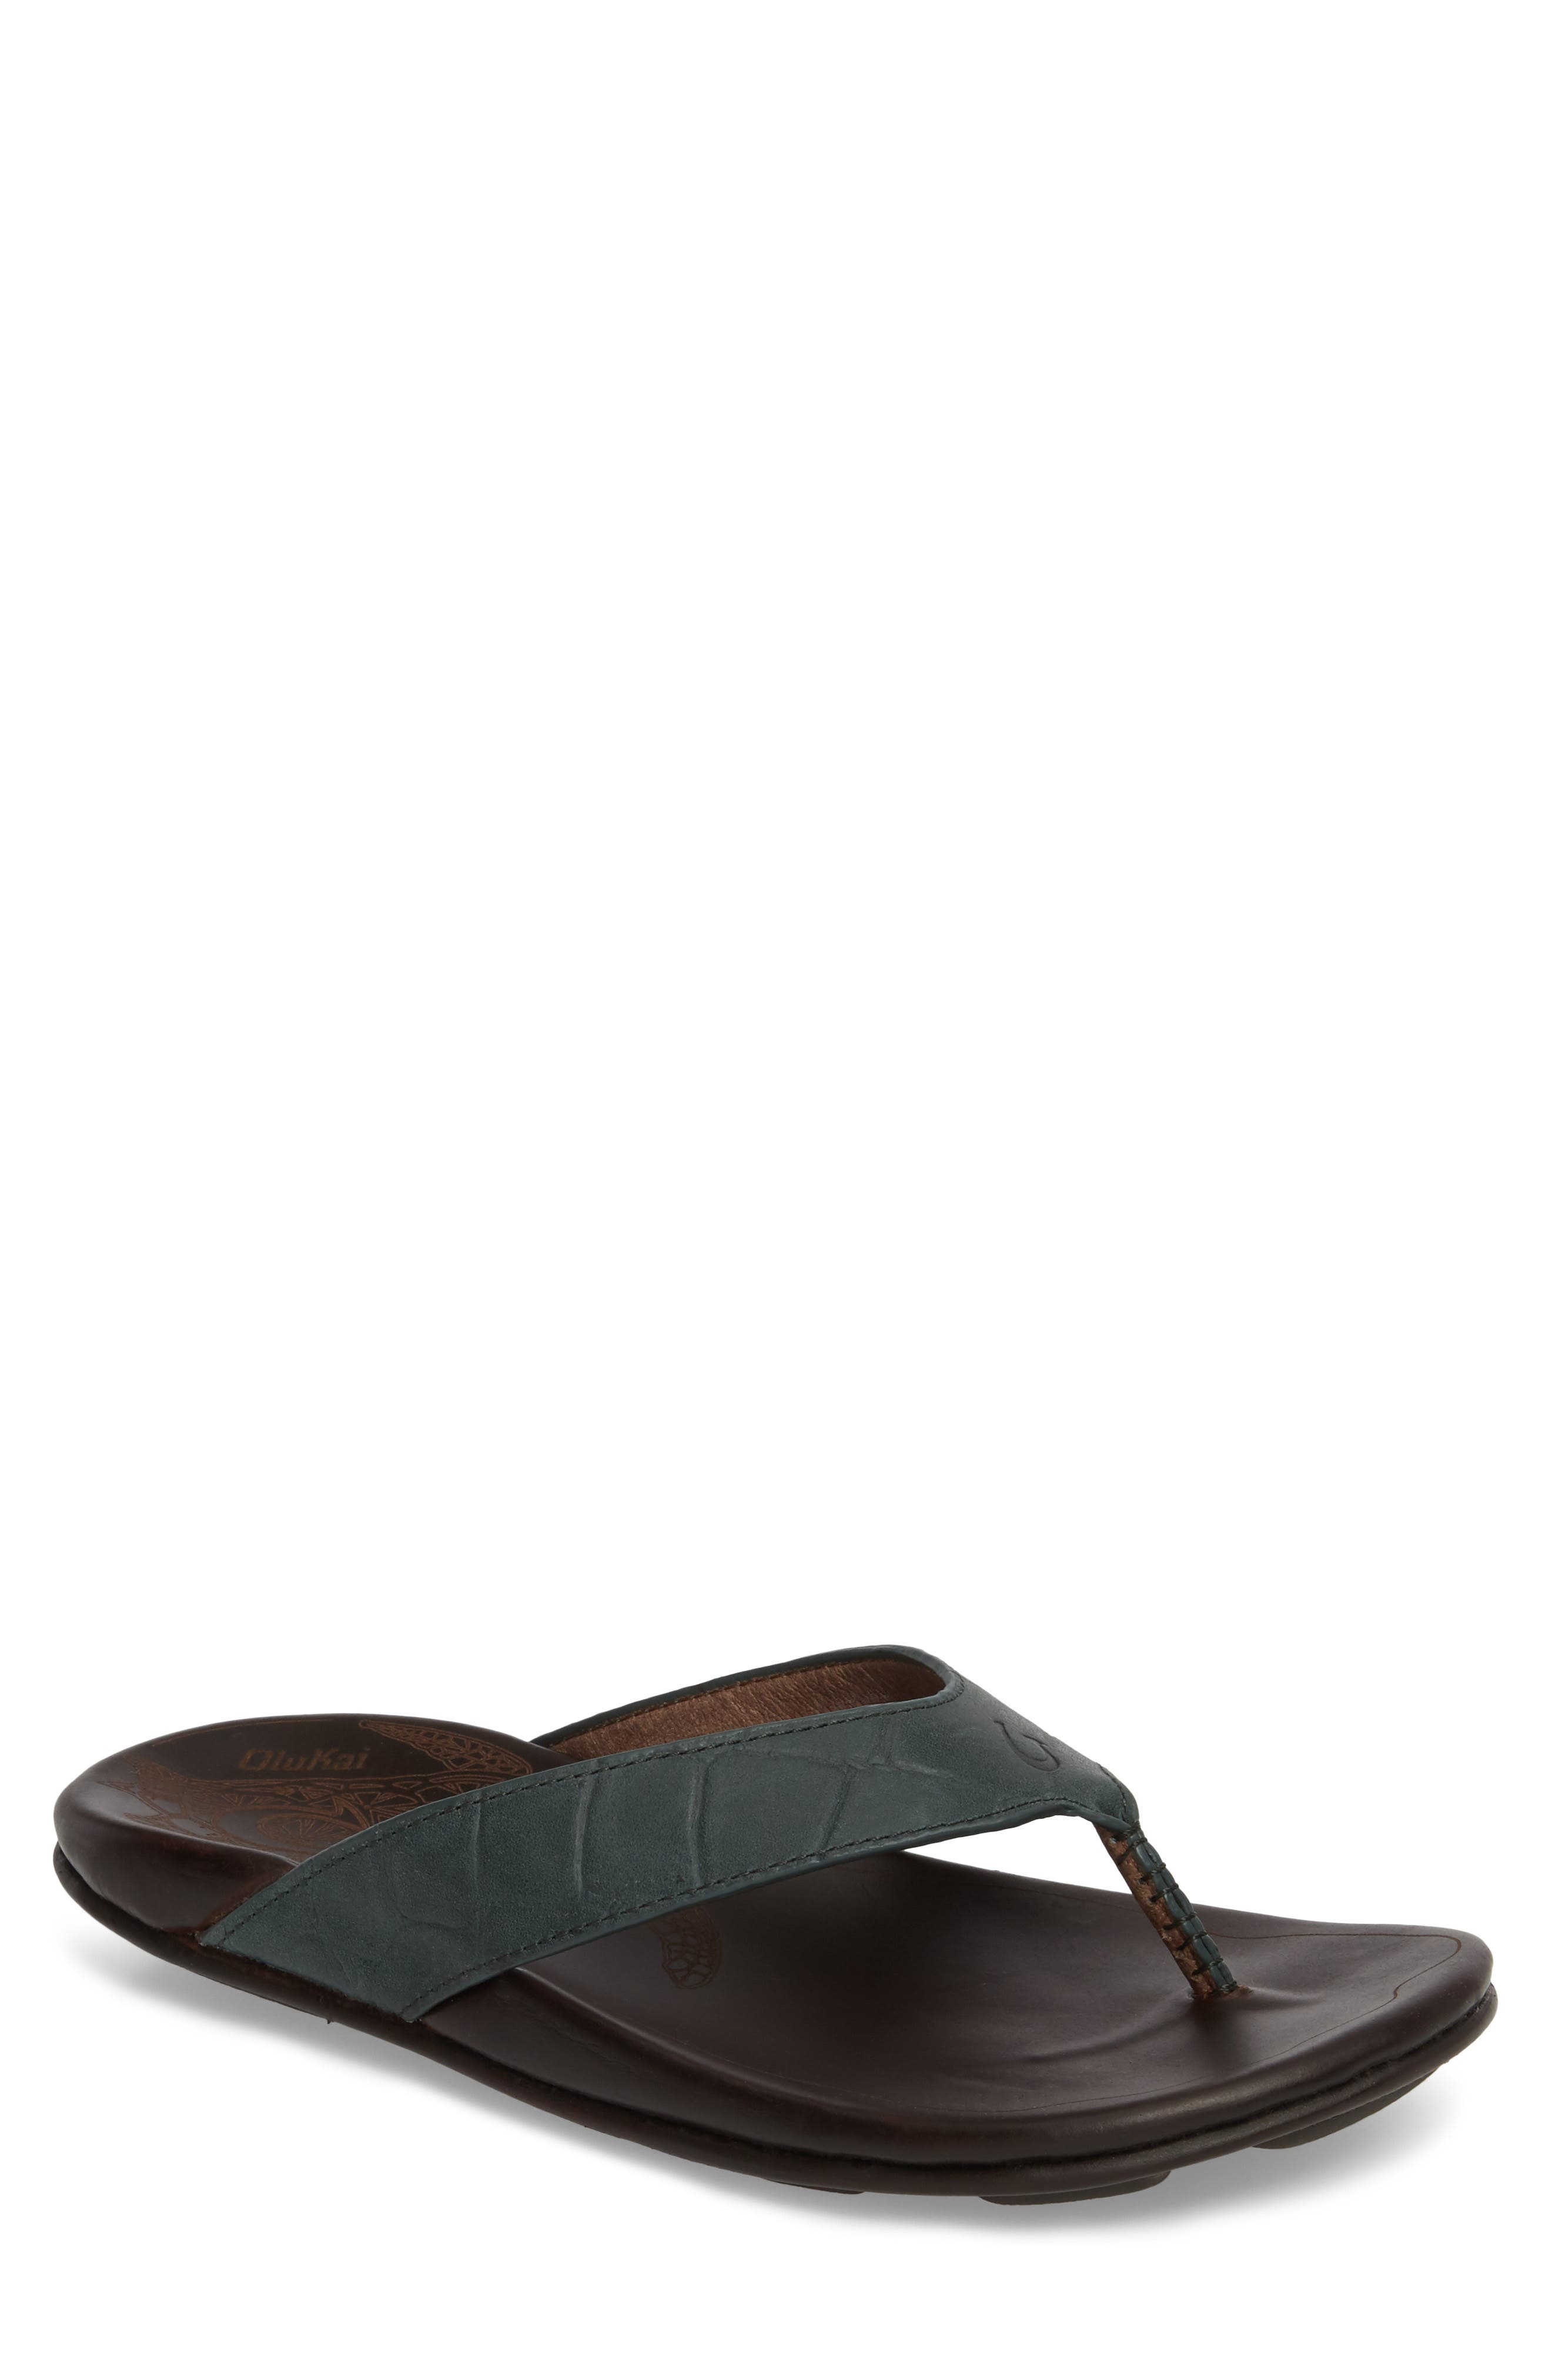 Kohana Kai Flip Flop,                         Main,                         color, Moss/ Dark Wood